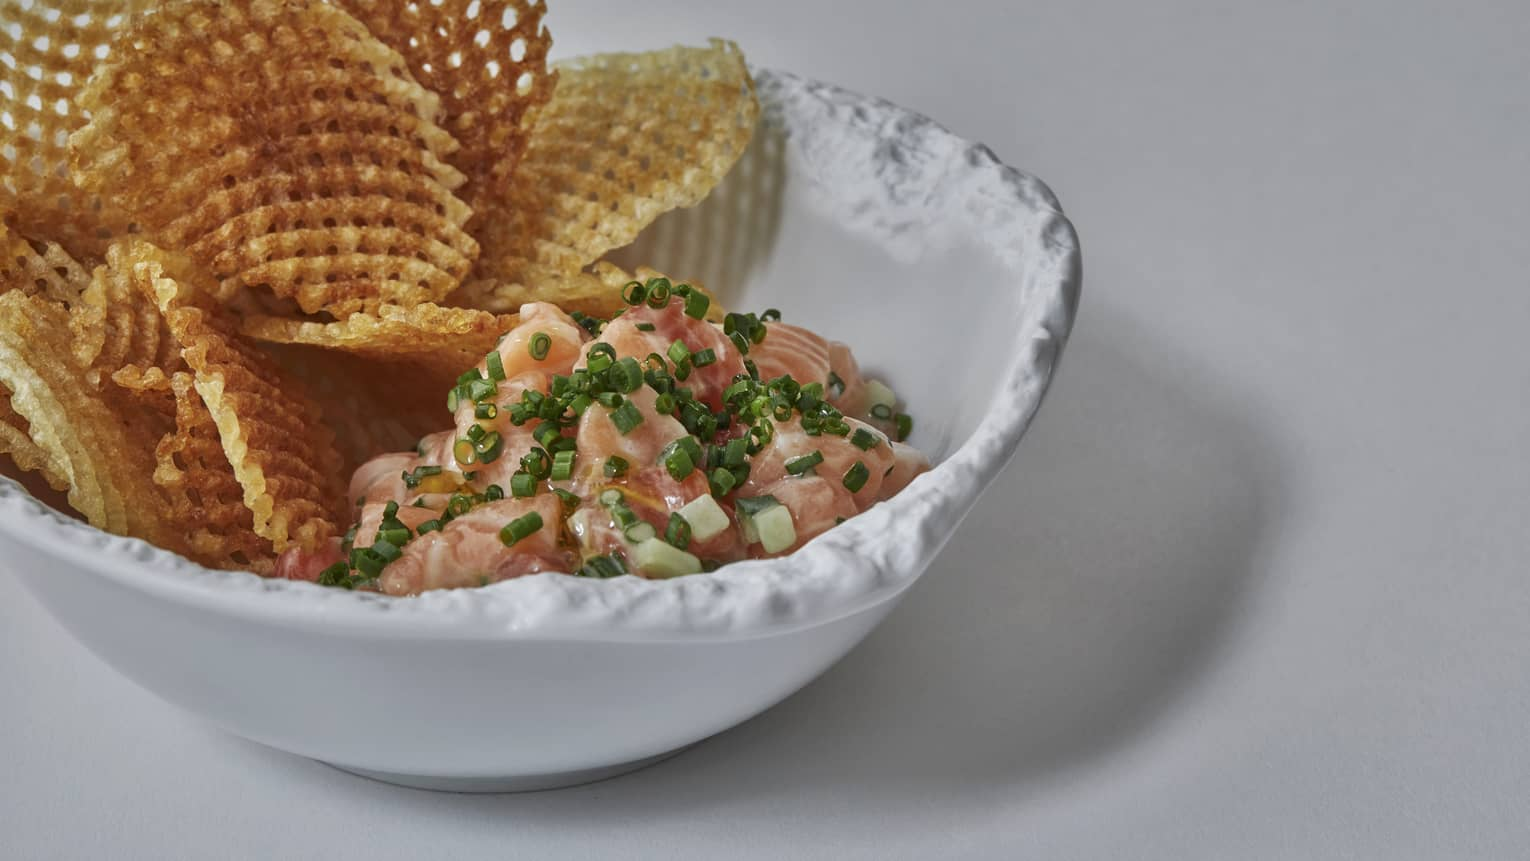 A waffle fry and salmon dish in a white porcelain bowl